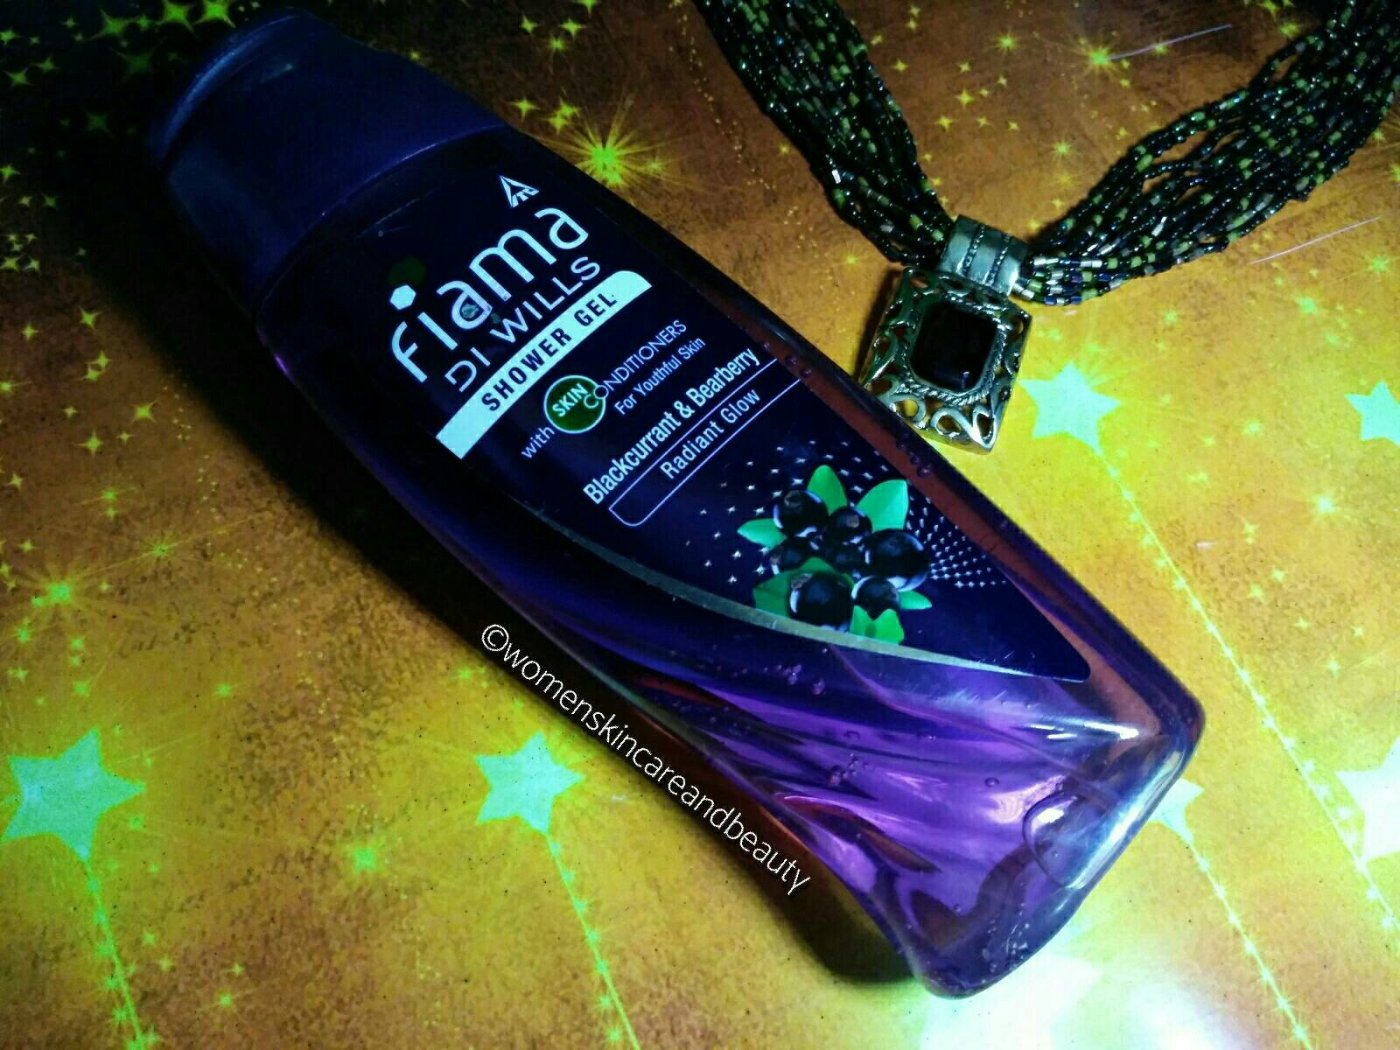 Fiama Di Wills Blackcurrant And Bearberry Shower Gel